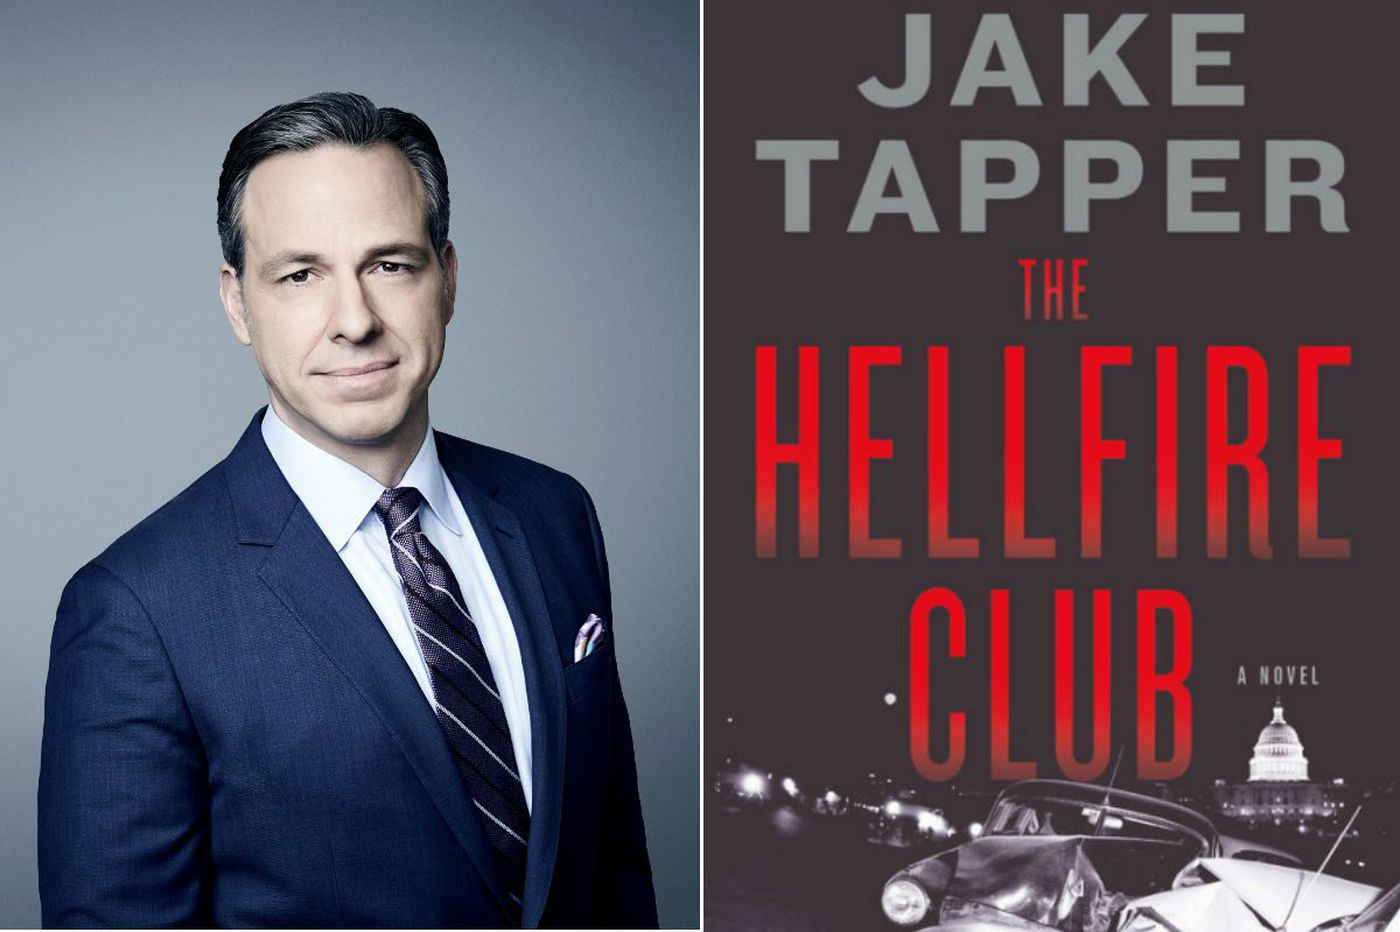 Jake Tapper's new book agrees with Donald Trump on this: 'The swamp exists'